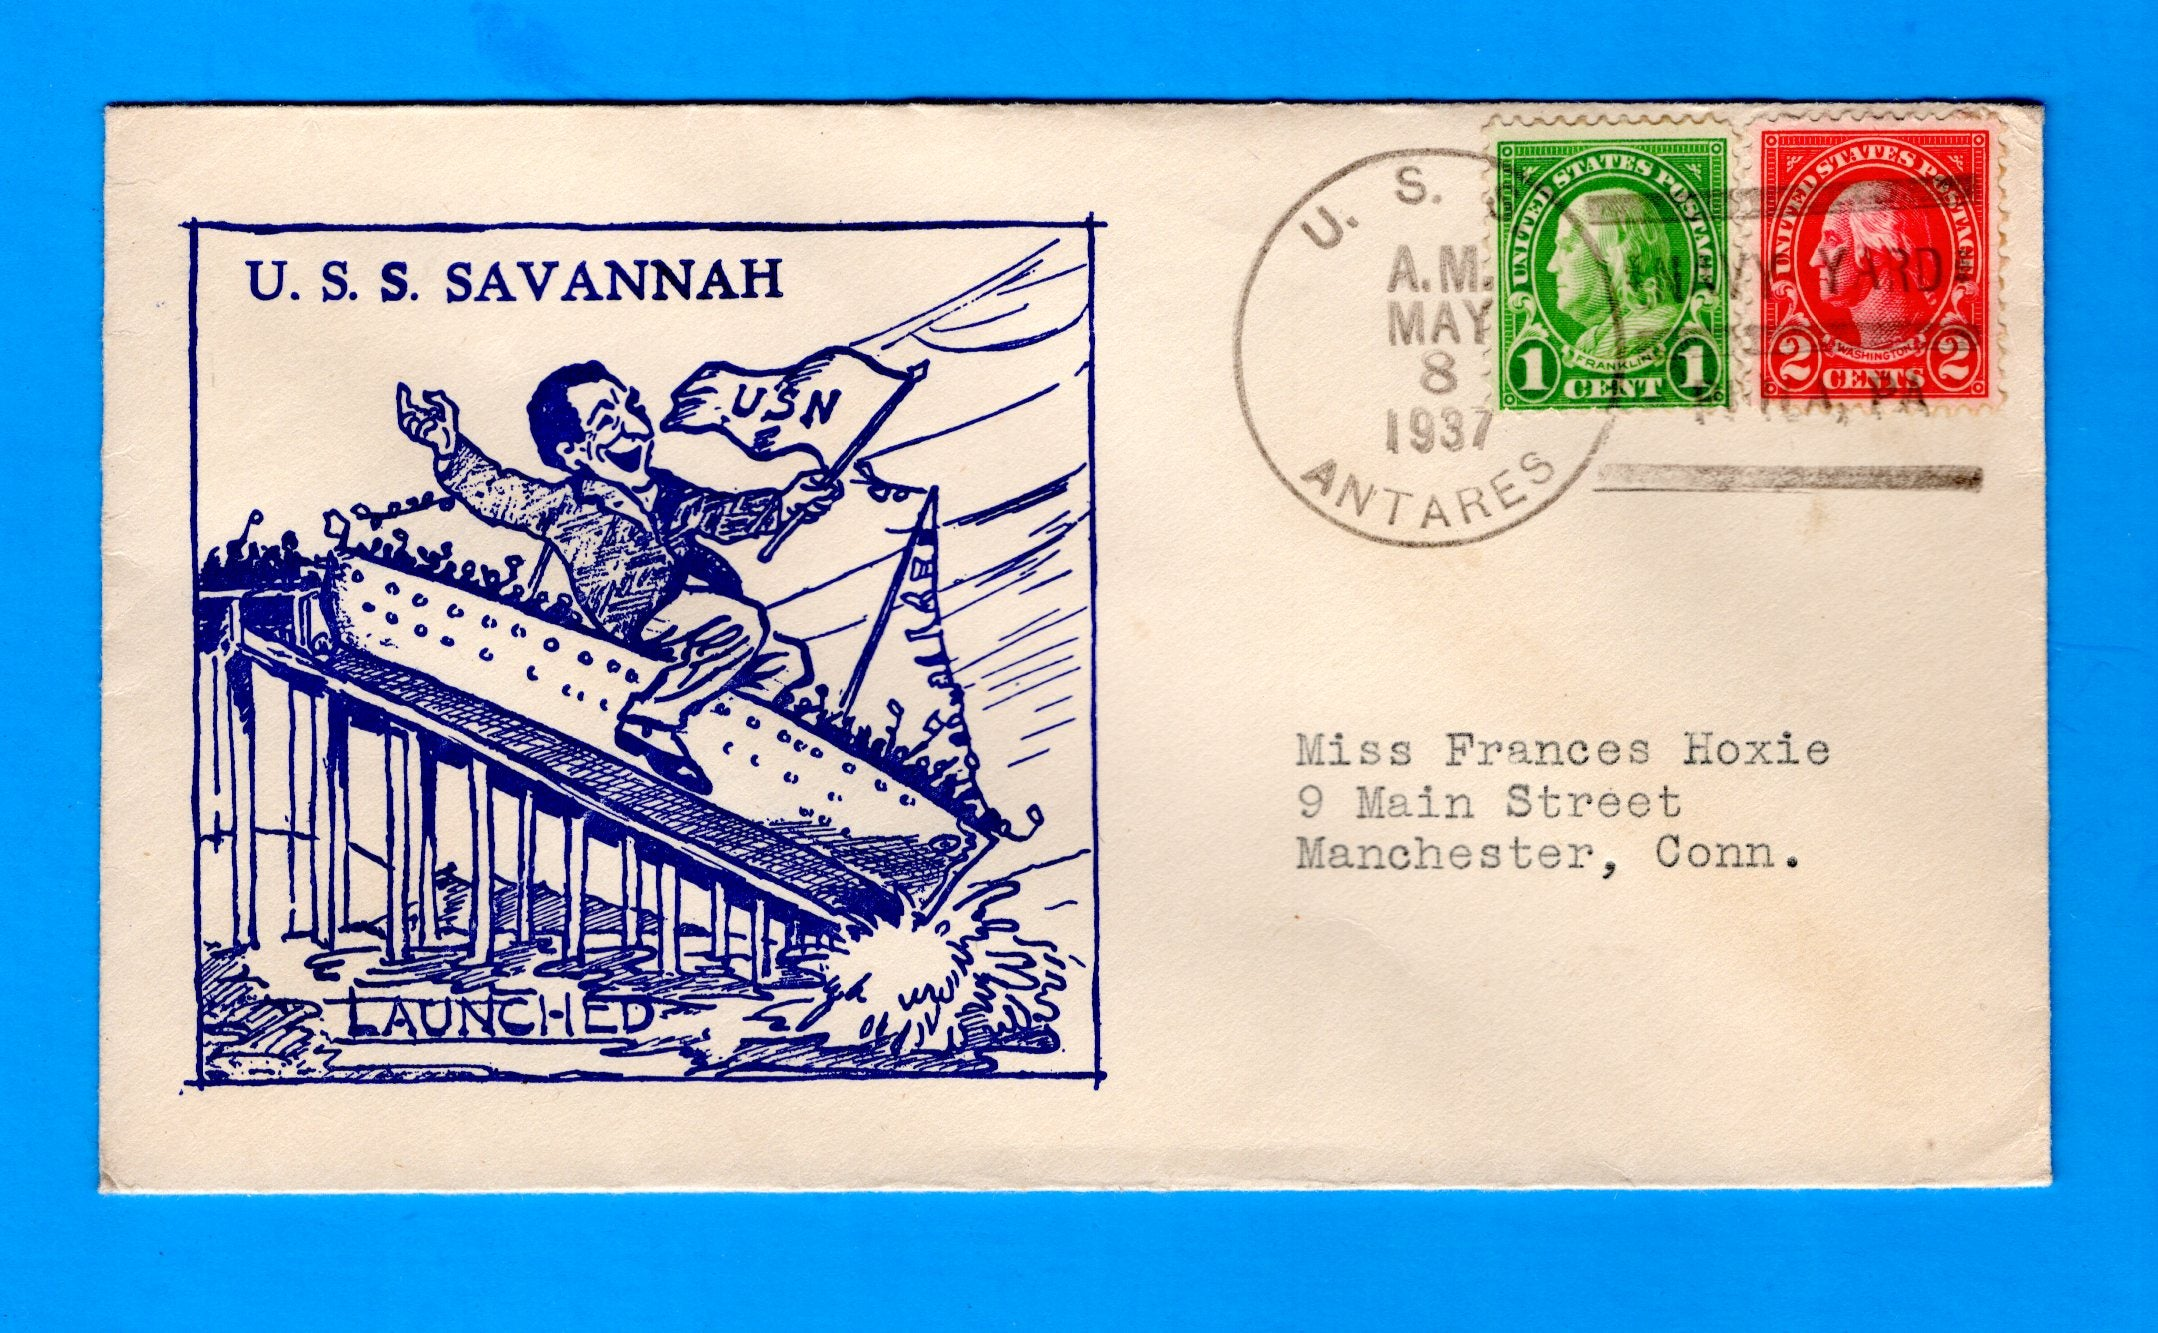 USS Savannah CL-42 Launched CL-42 May 8, 1937 - Cancelled USS Antares AG-5